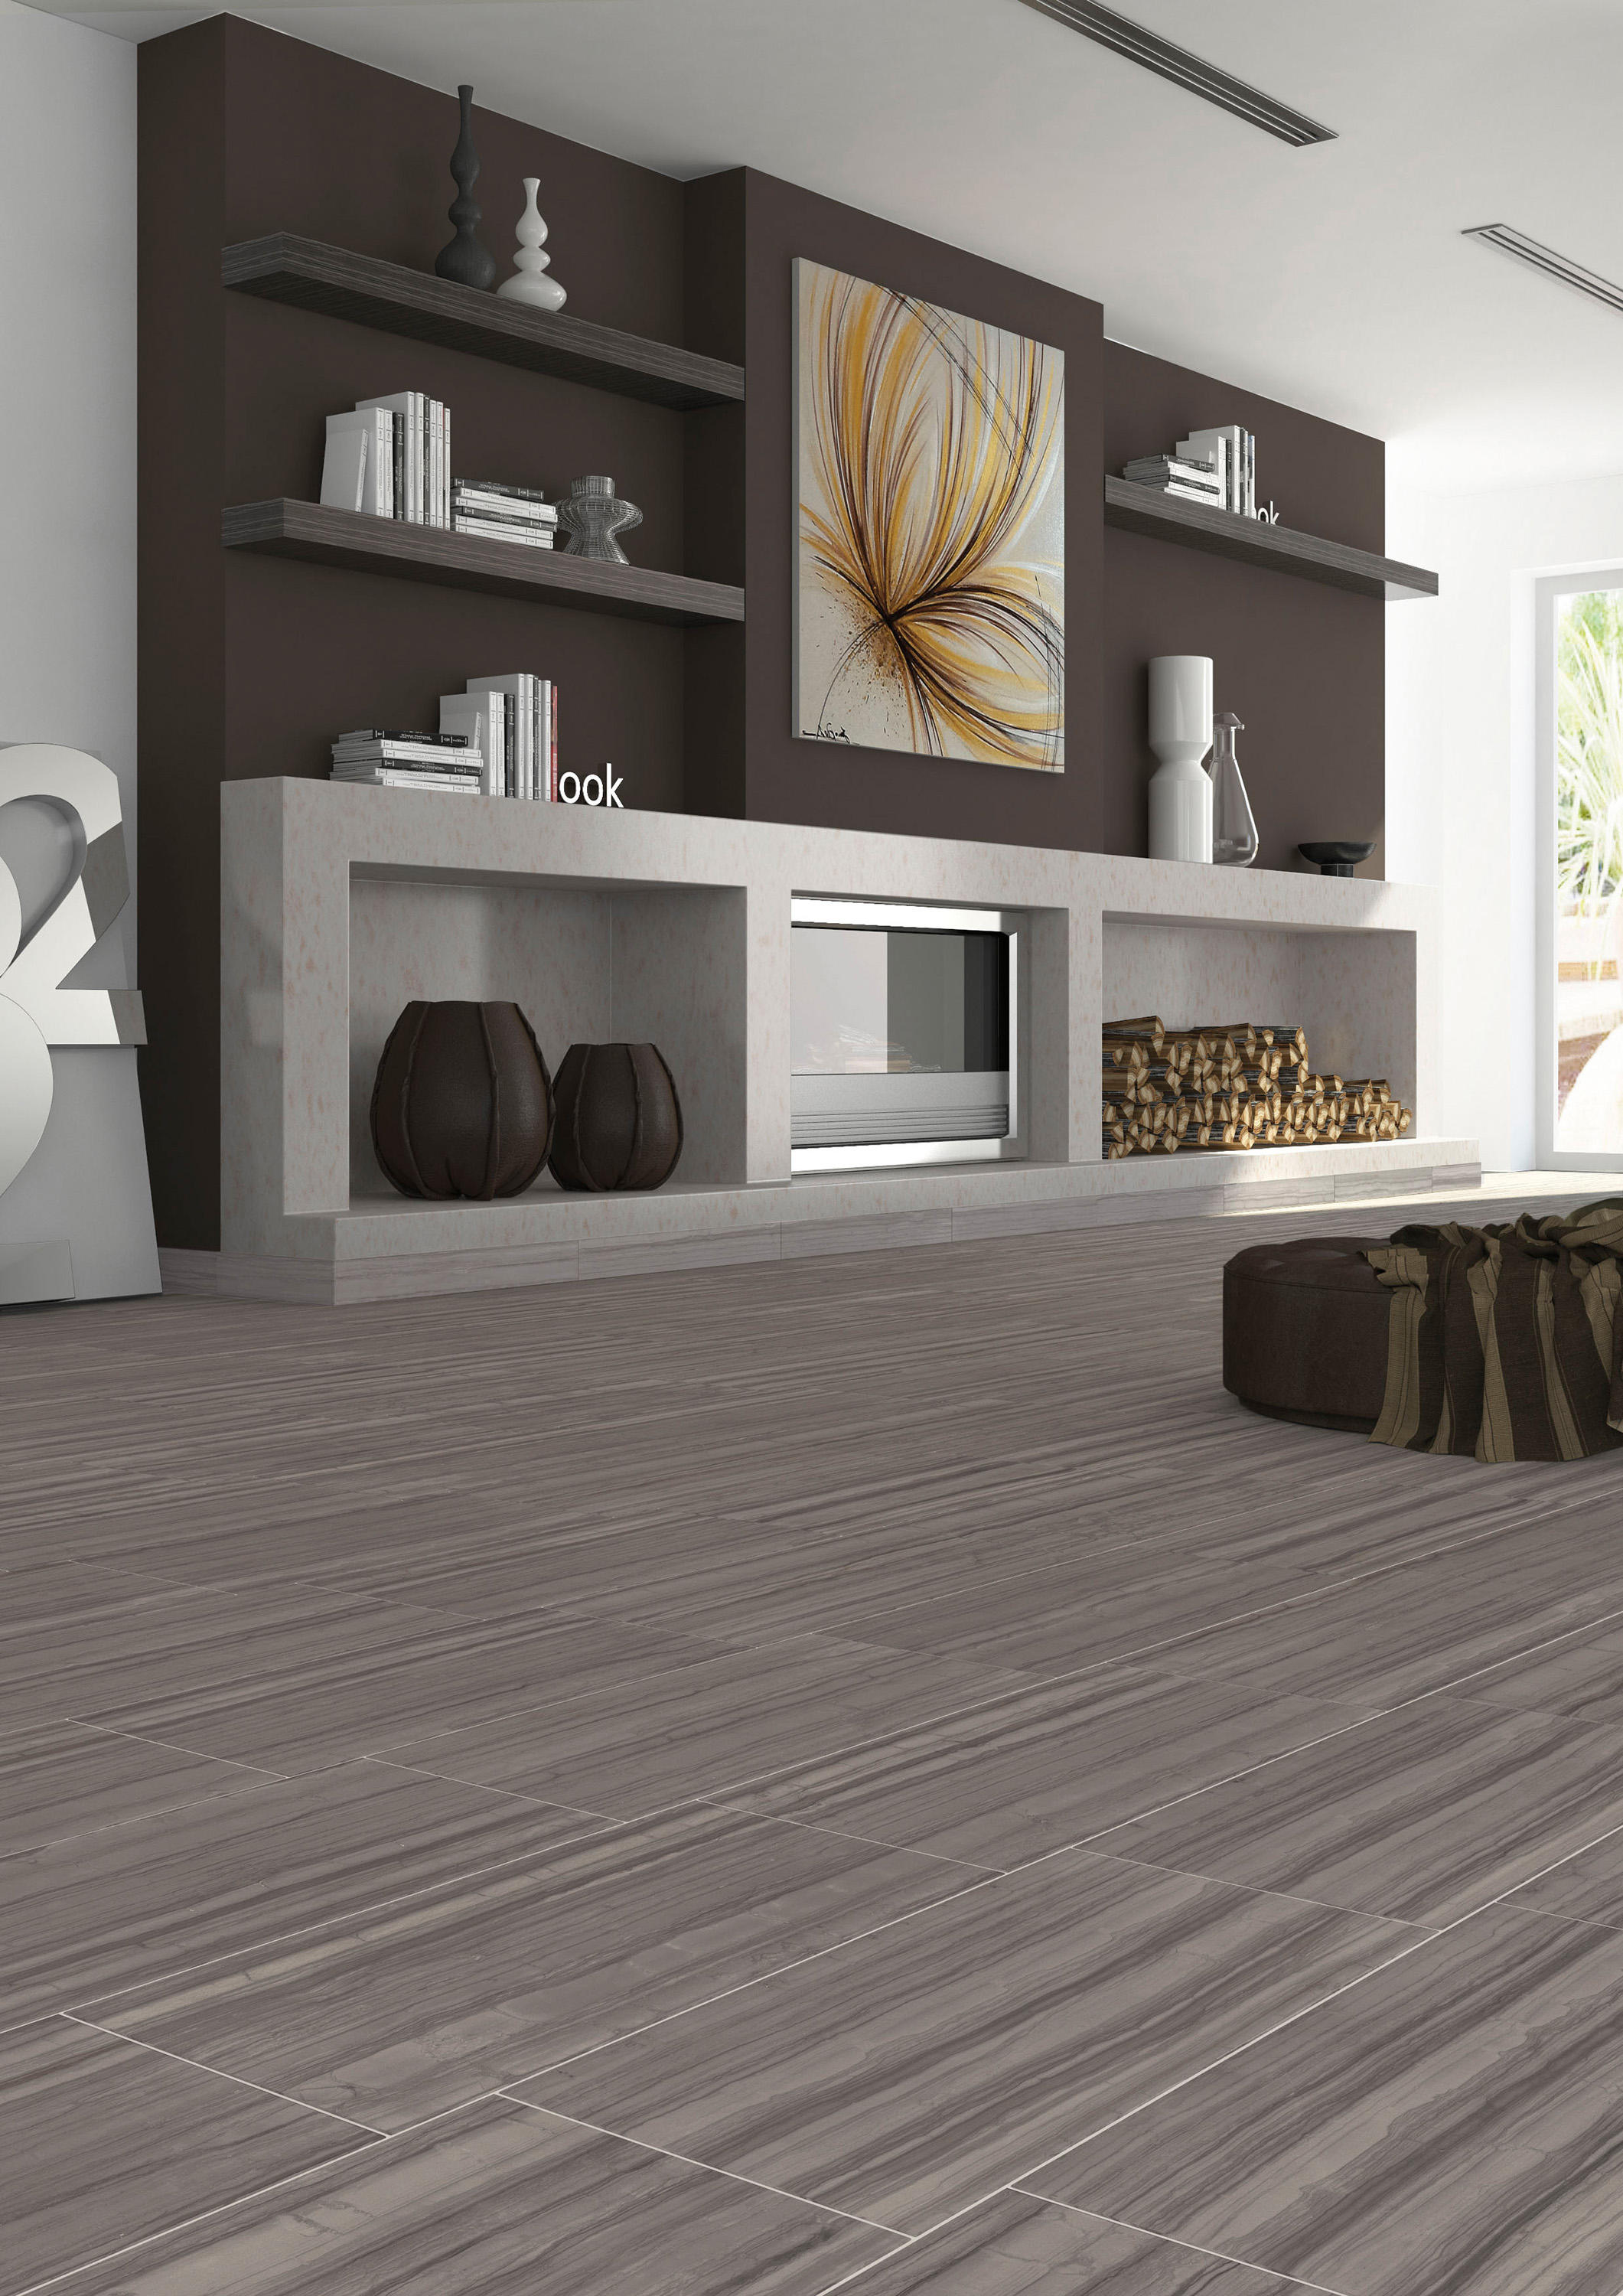 Georgette Briar Taupe Weave Ceramic Mosaics From